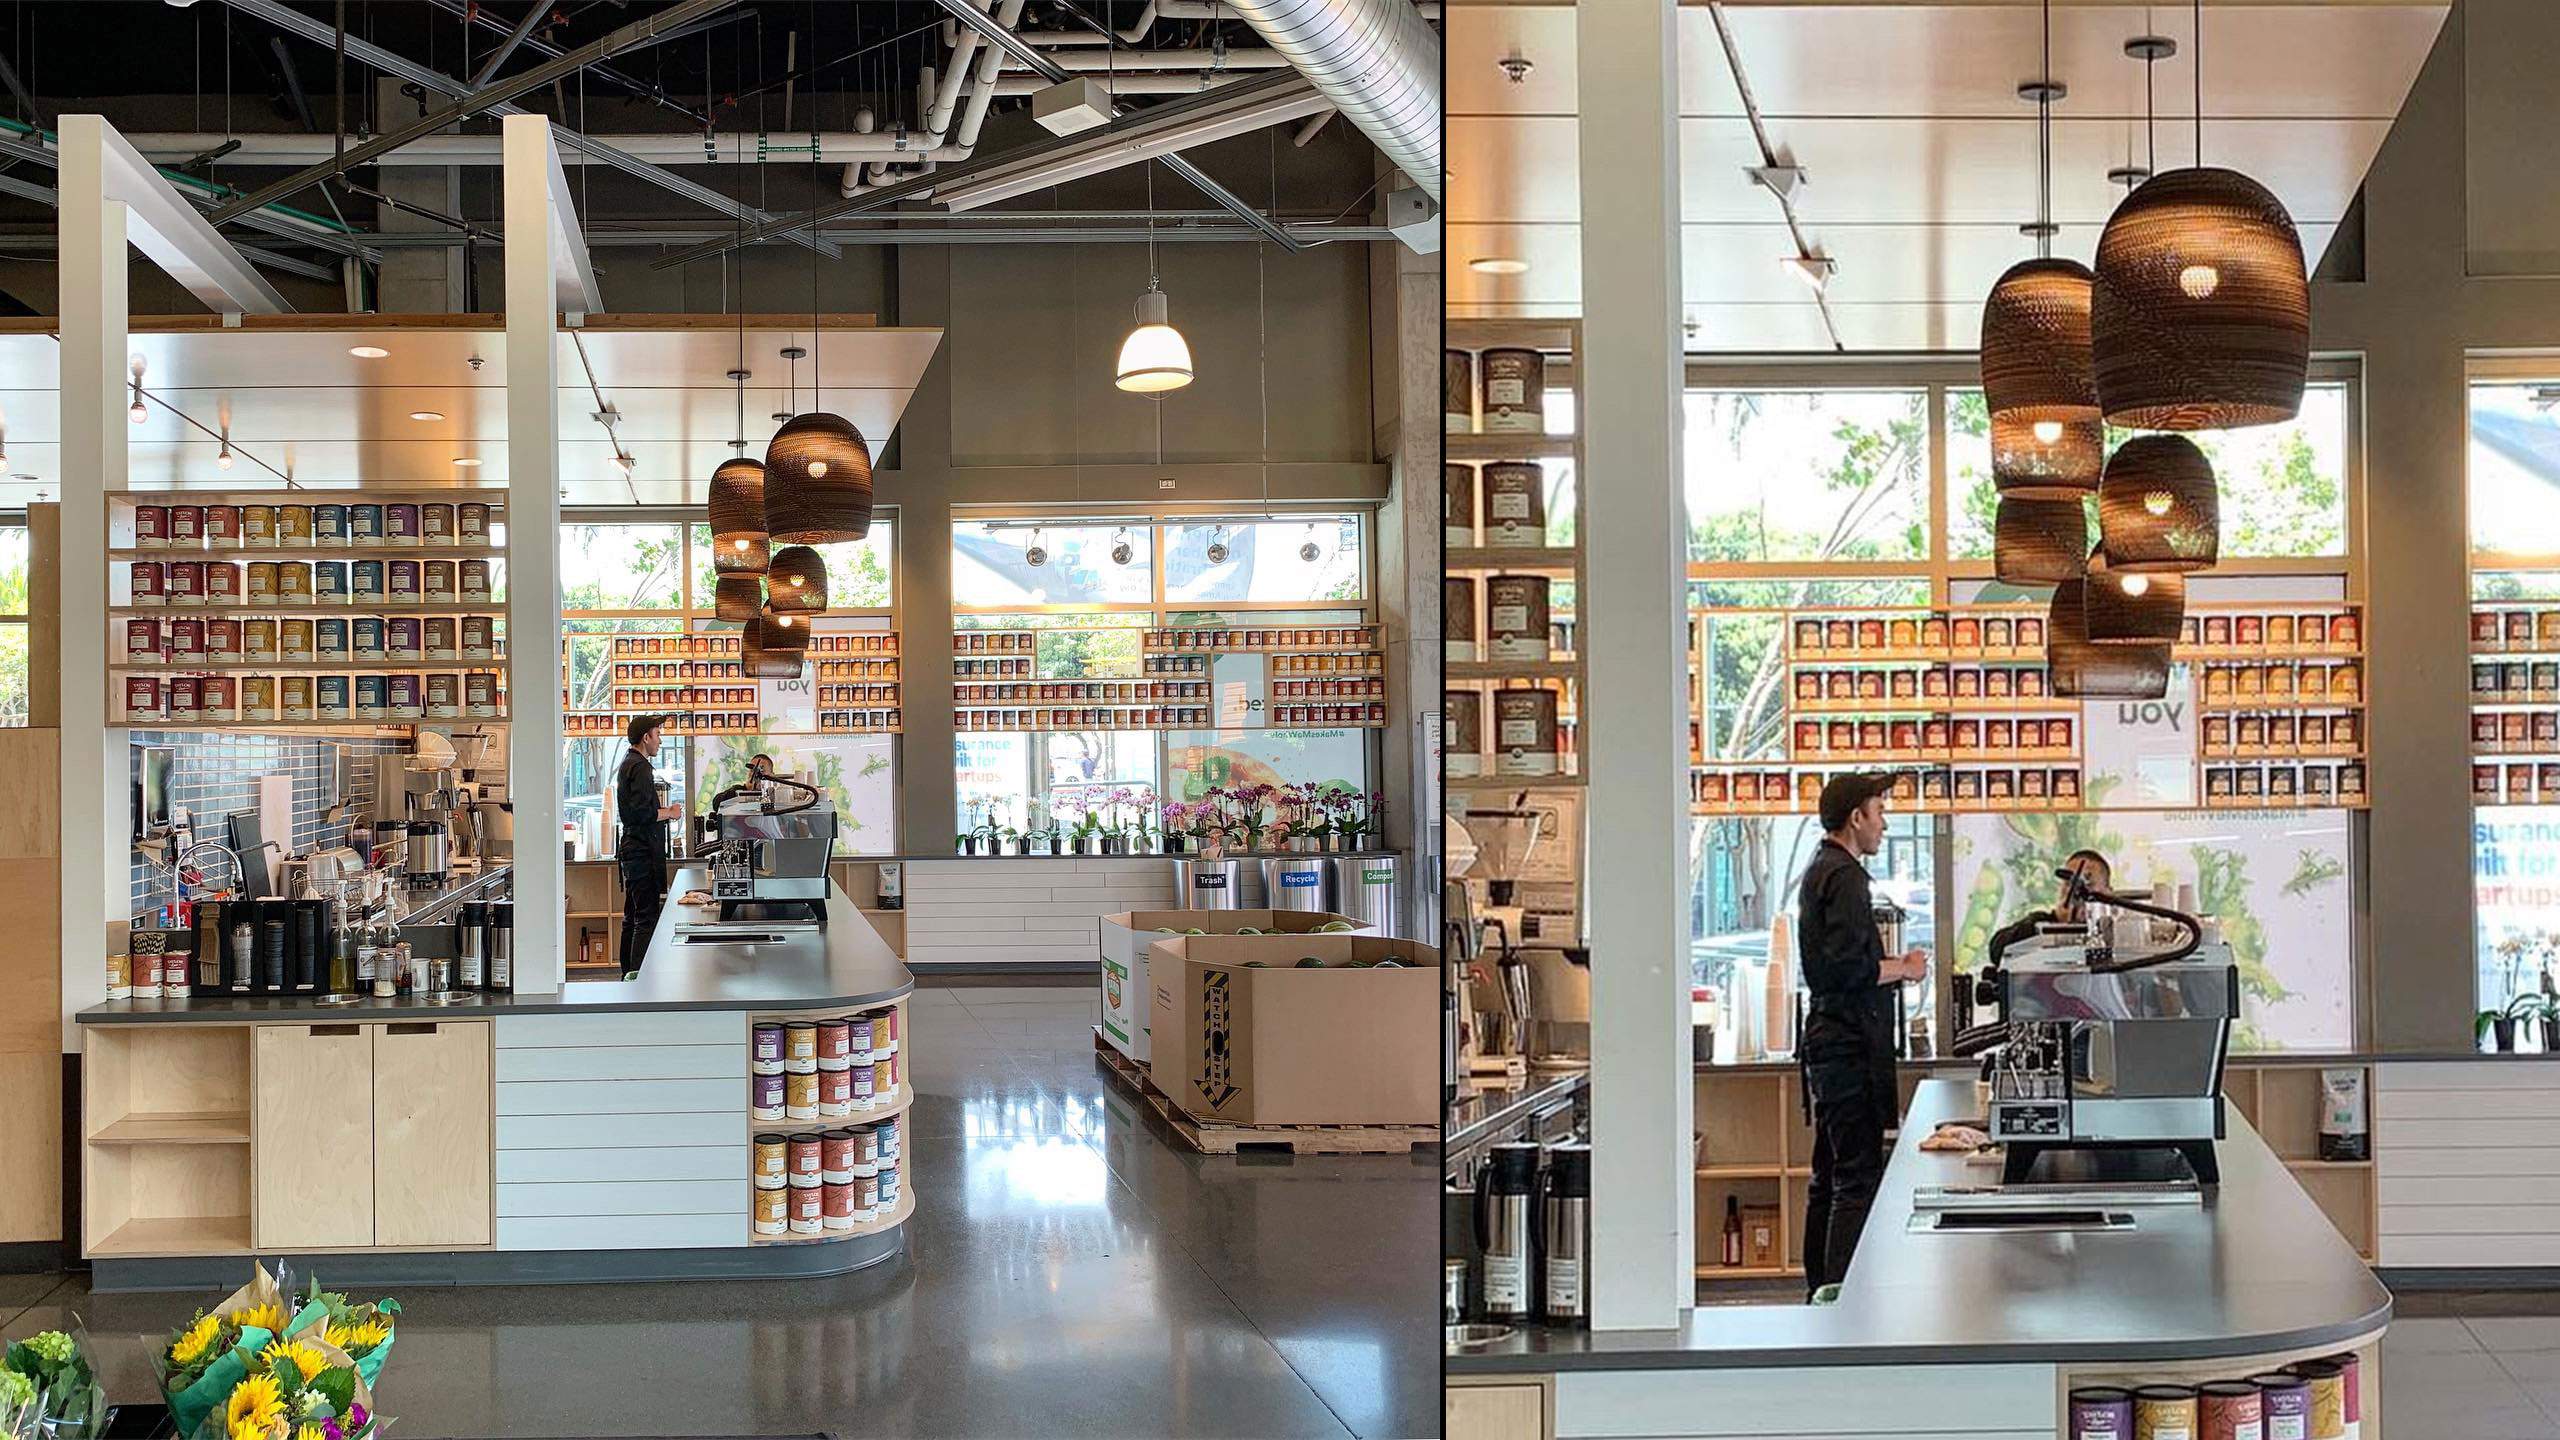 offee-Shop-Design-Taylor-Lane-1-Counter-with-dropped-ceiling-brown-light-fixtures-and-open-shelving